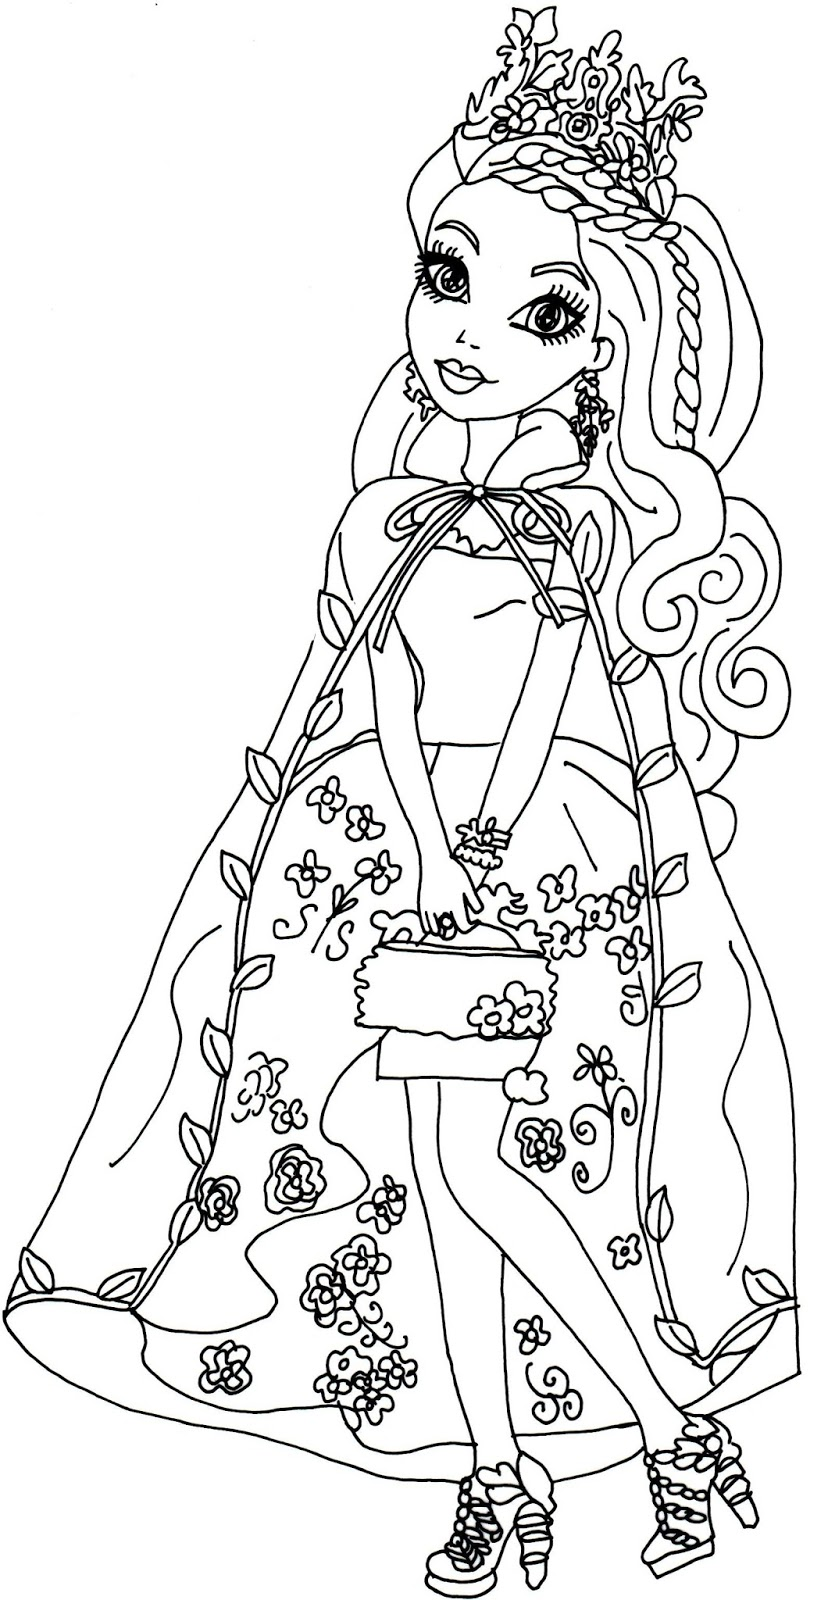 free pintable coloring pages - photo#43